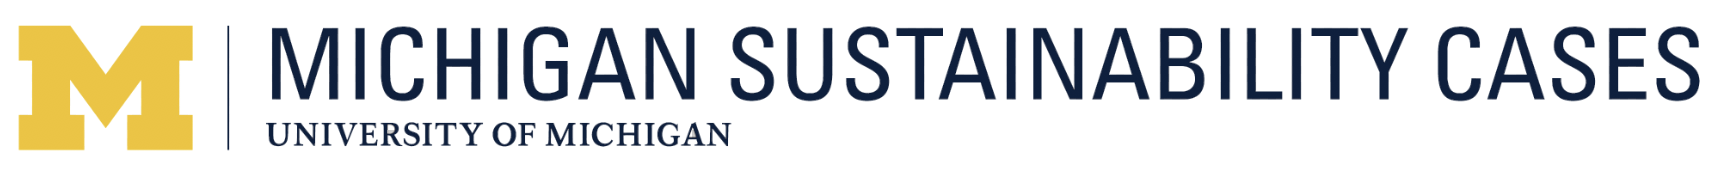 Michigan Sustainability Cases